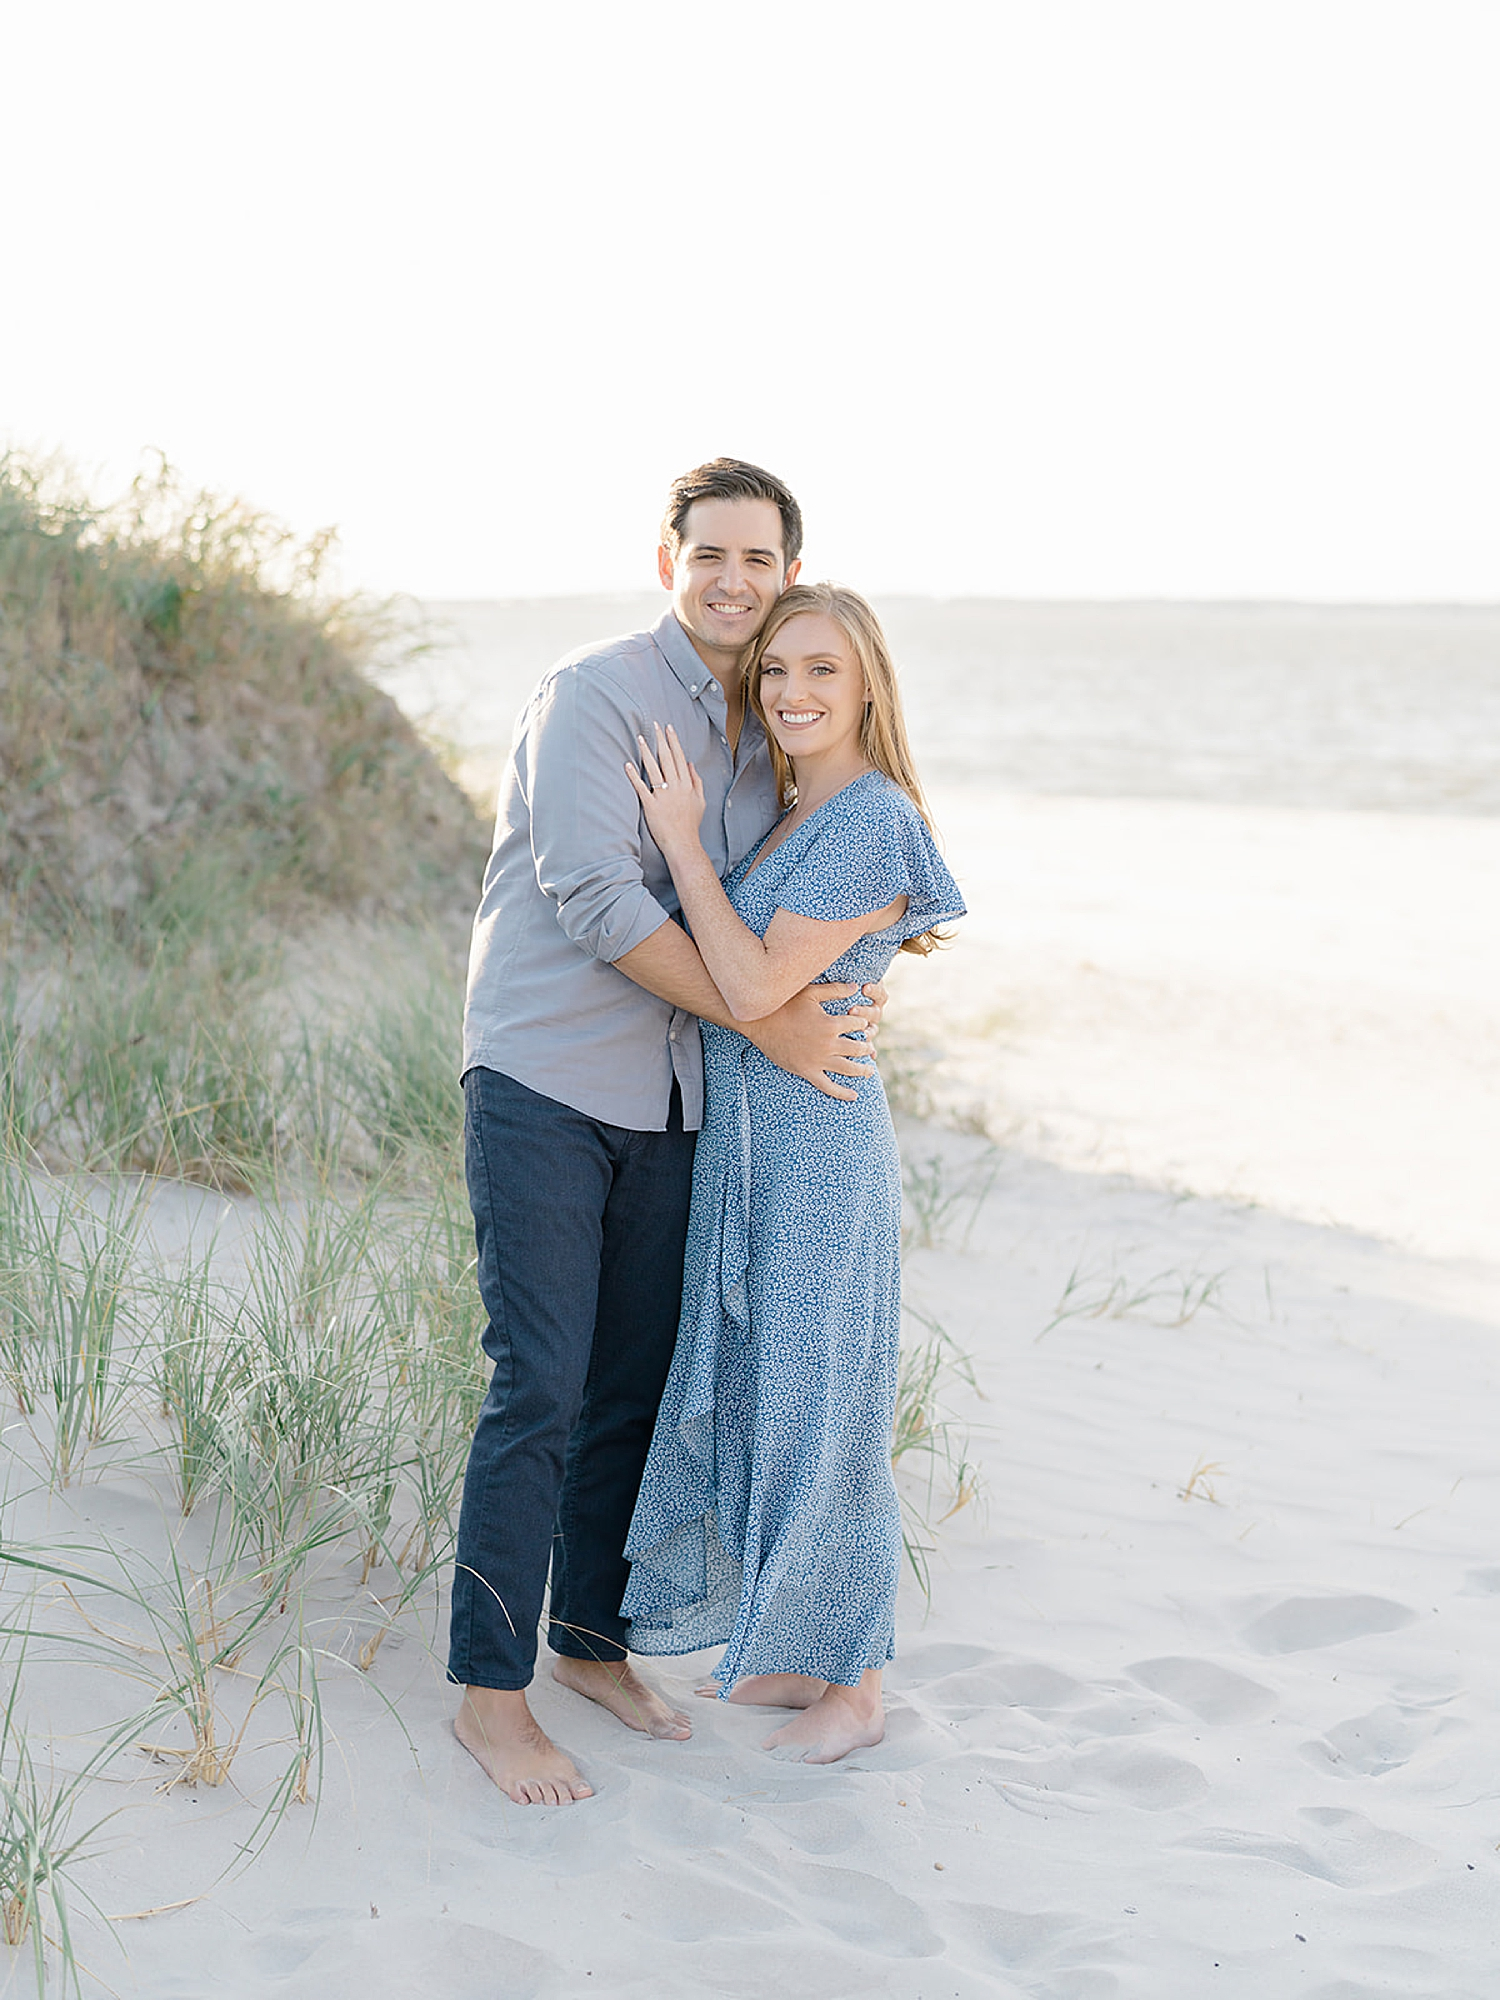 Ocean City NJ Engagement Photography by Magdalena Studios 0001